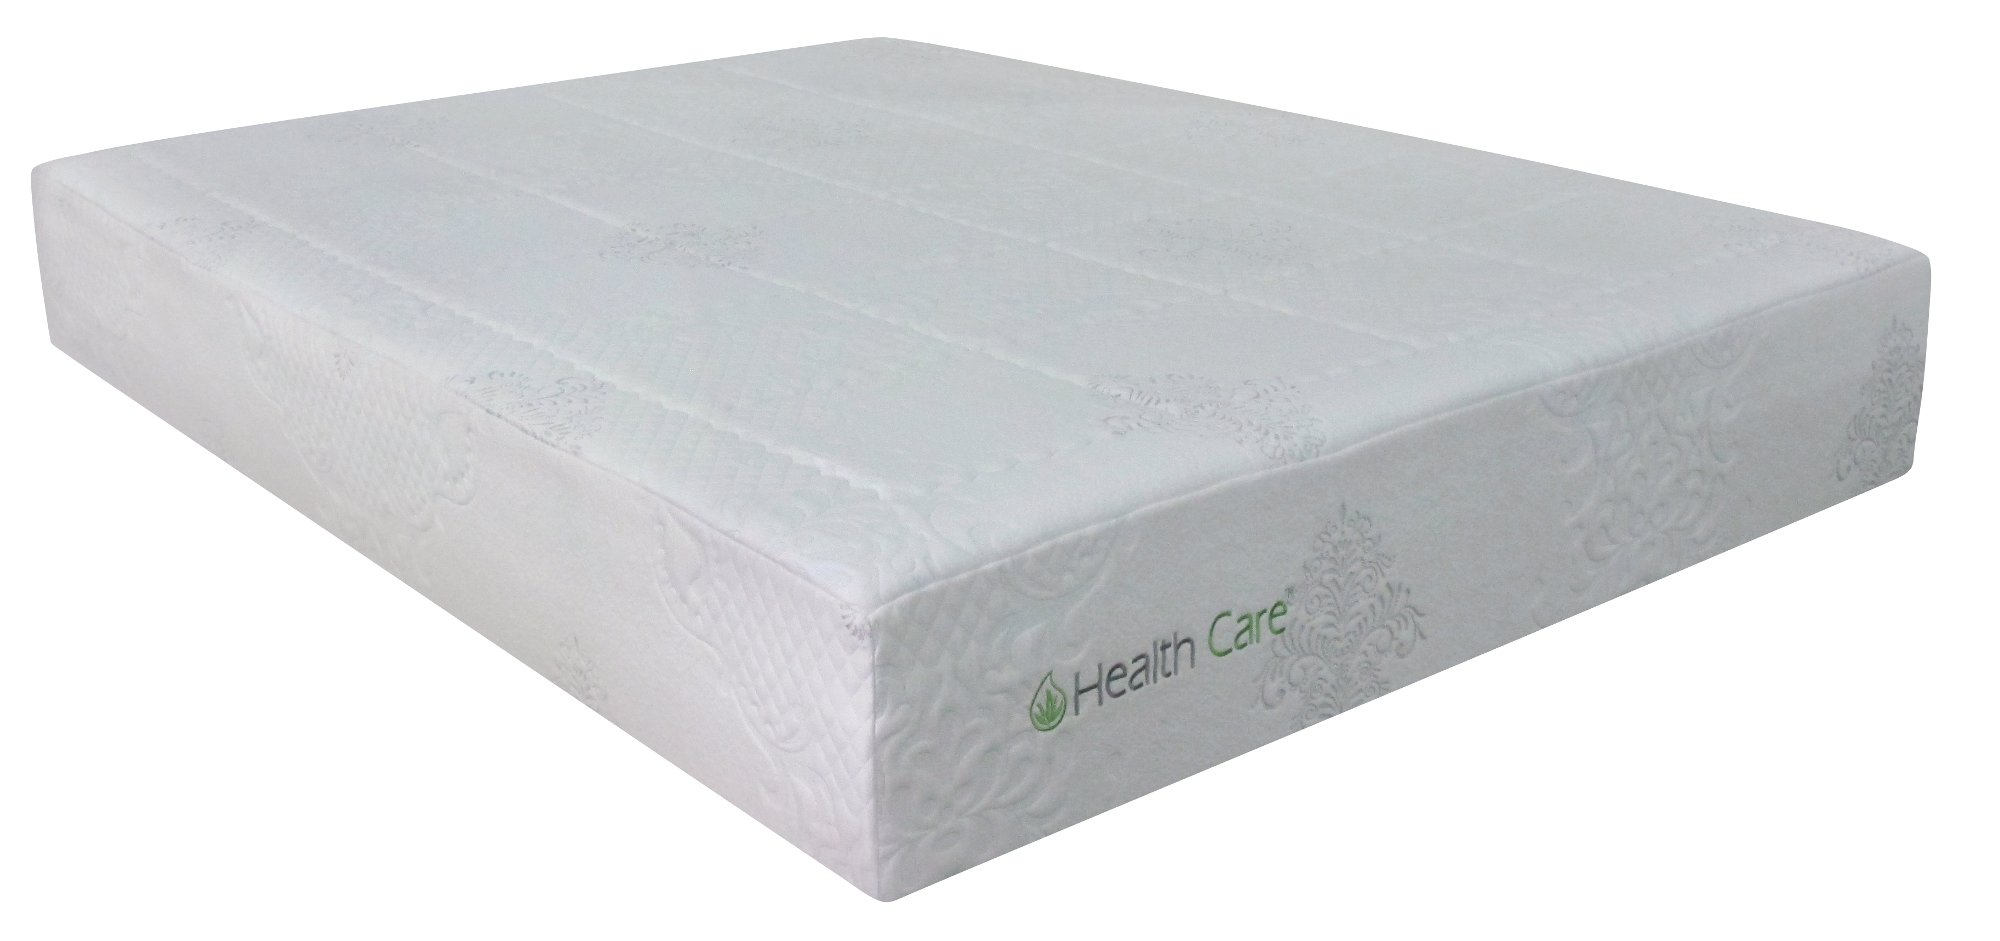 King 12 Luxury Gel Memory Foam Mattress With Adjustable Massage Base Rc Willey Furniture Store